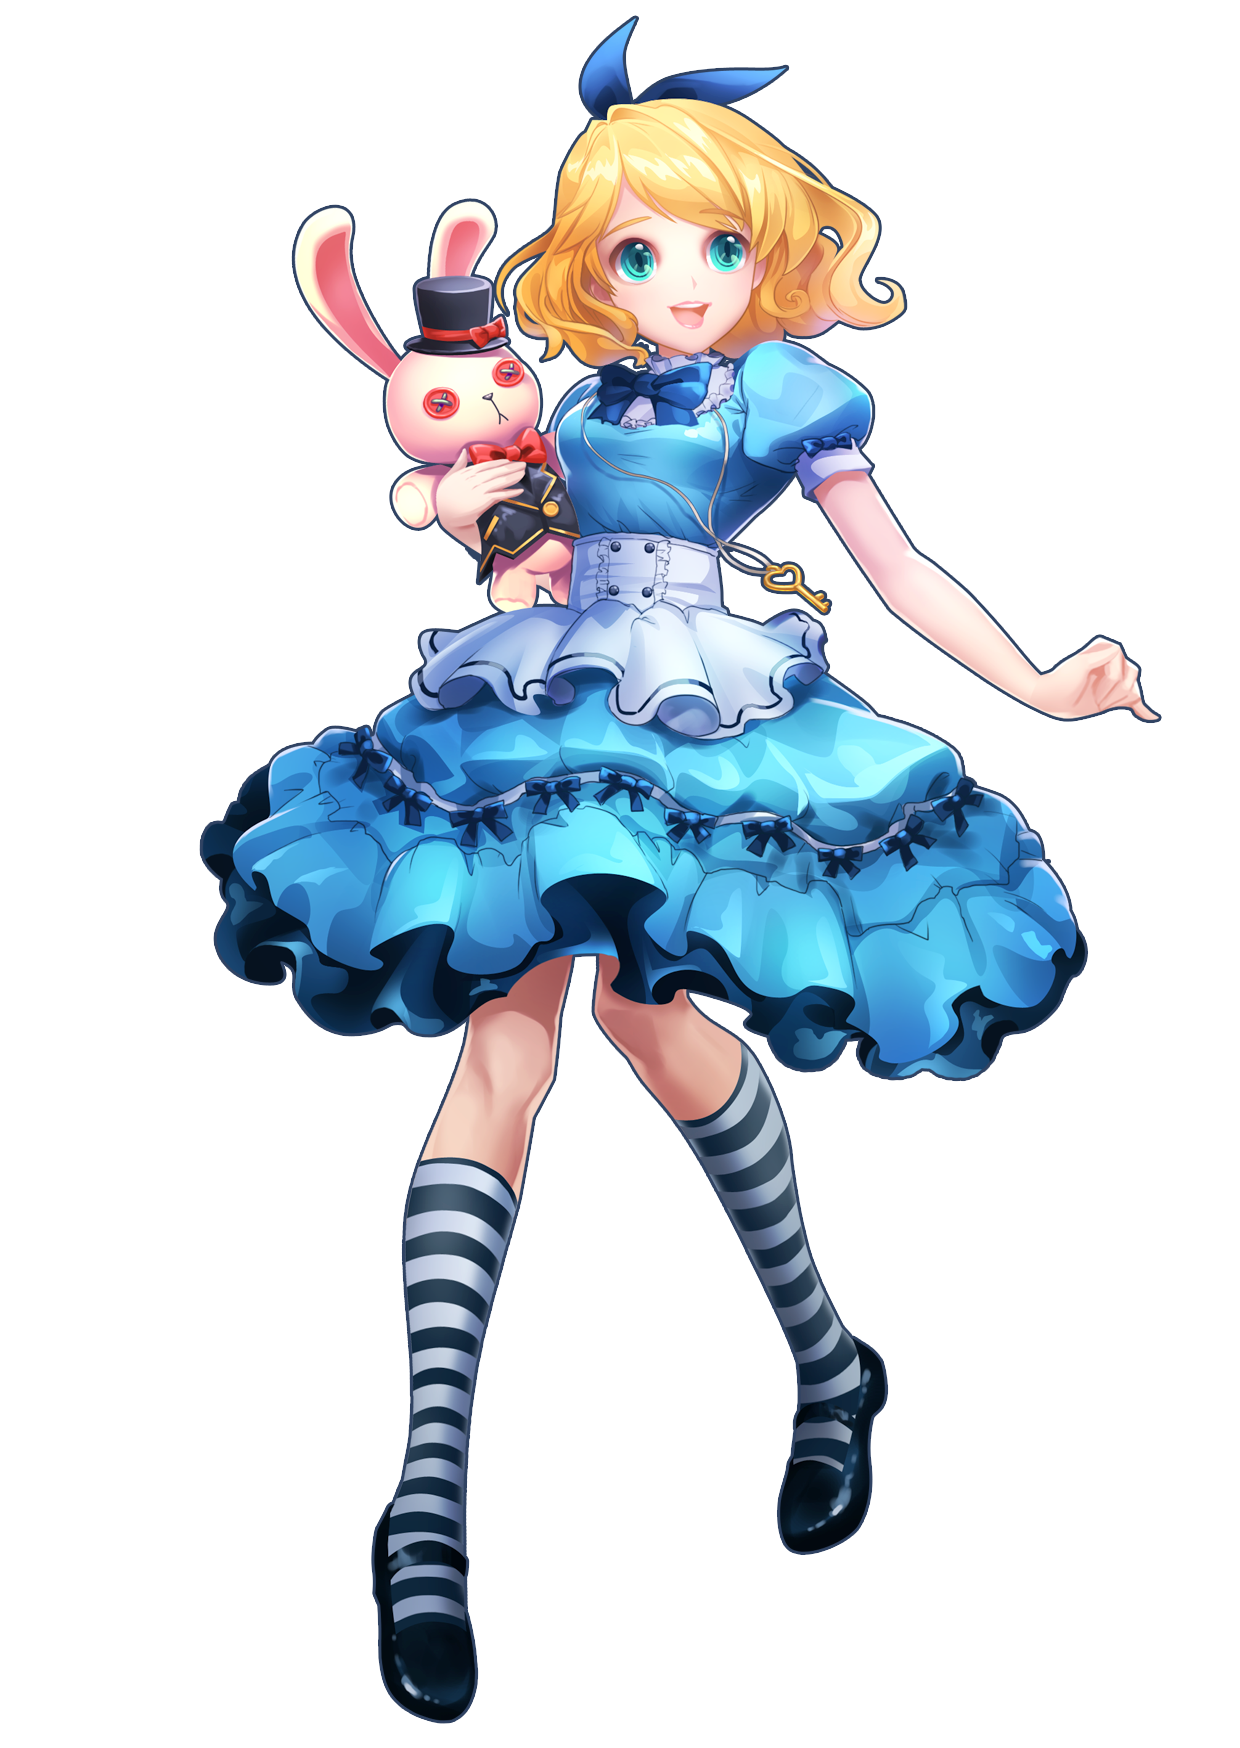 Easter Girl Alice Alice in wonderland theme, Alice